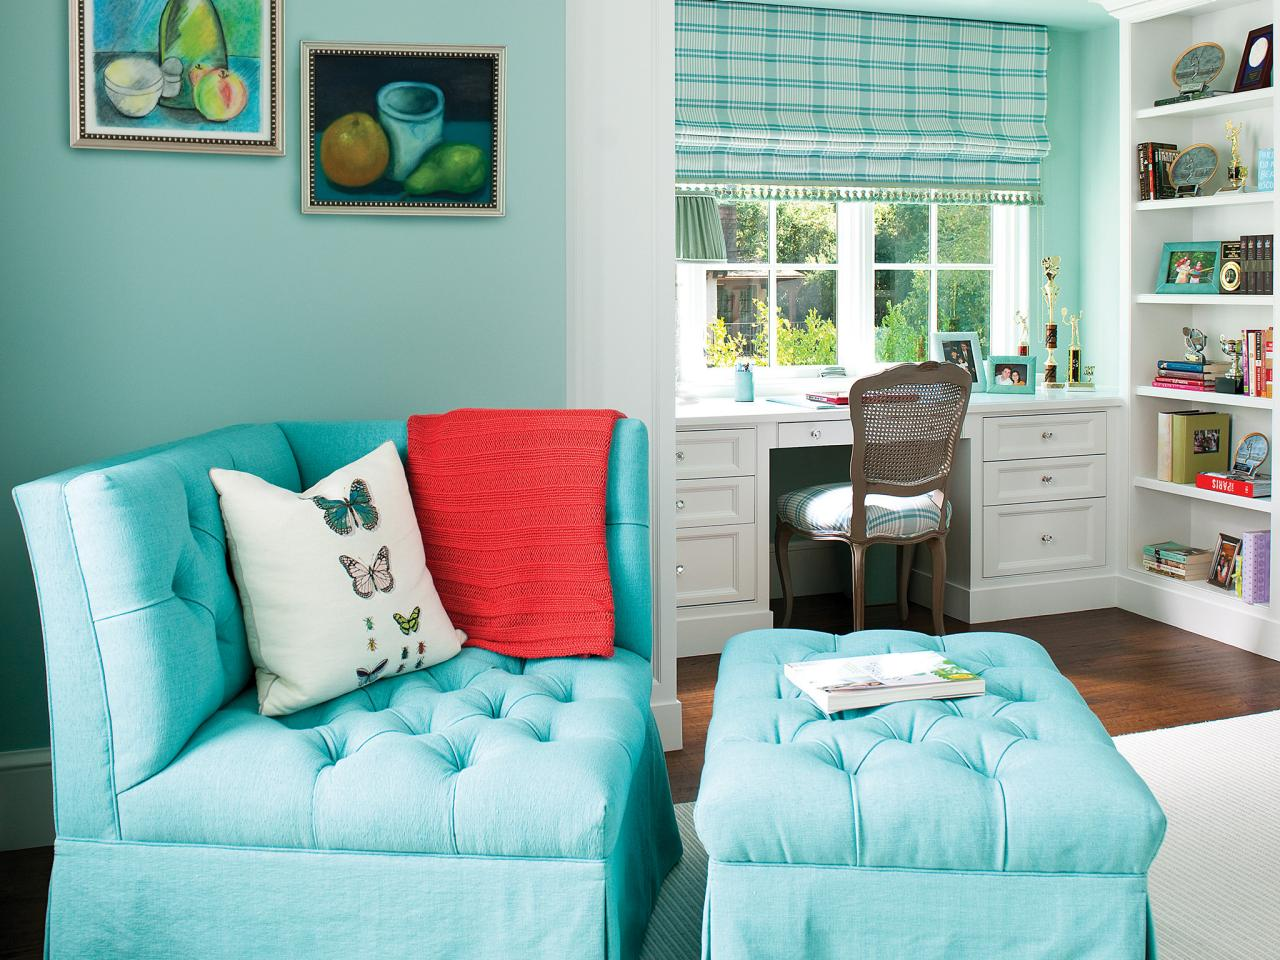 Comfortable Chairs For Bedroom Sitting Area